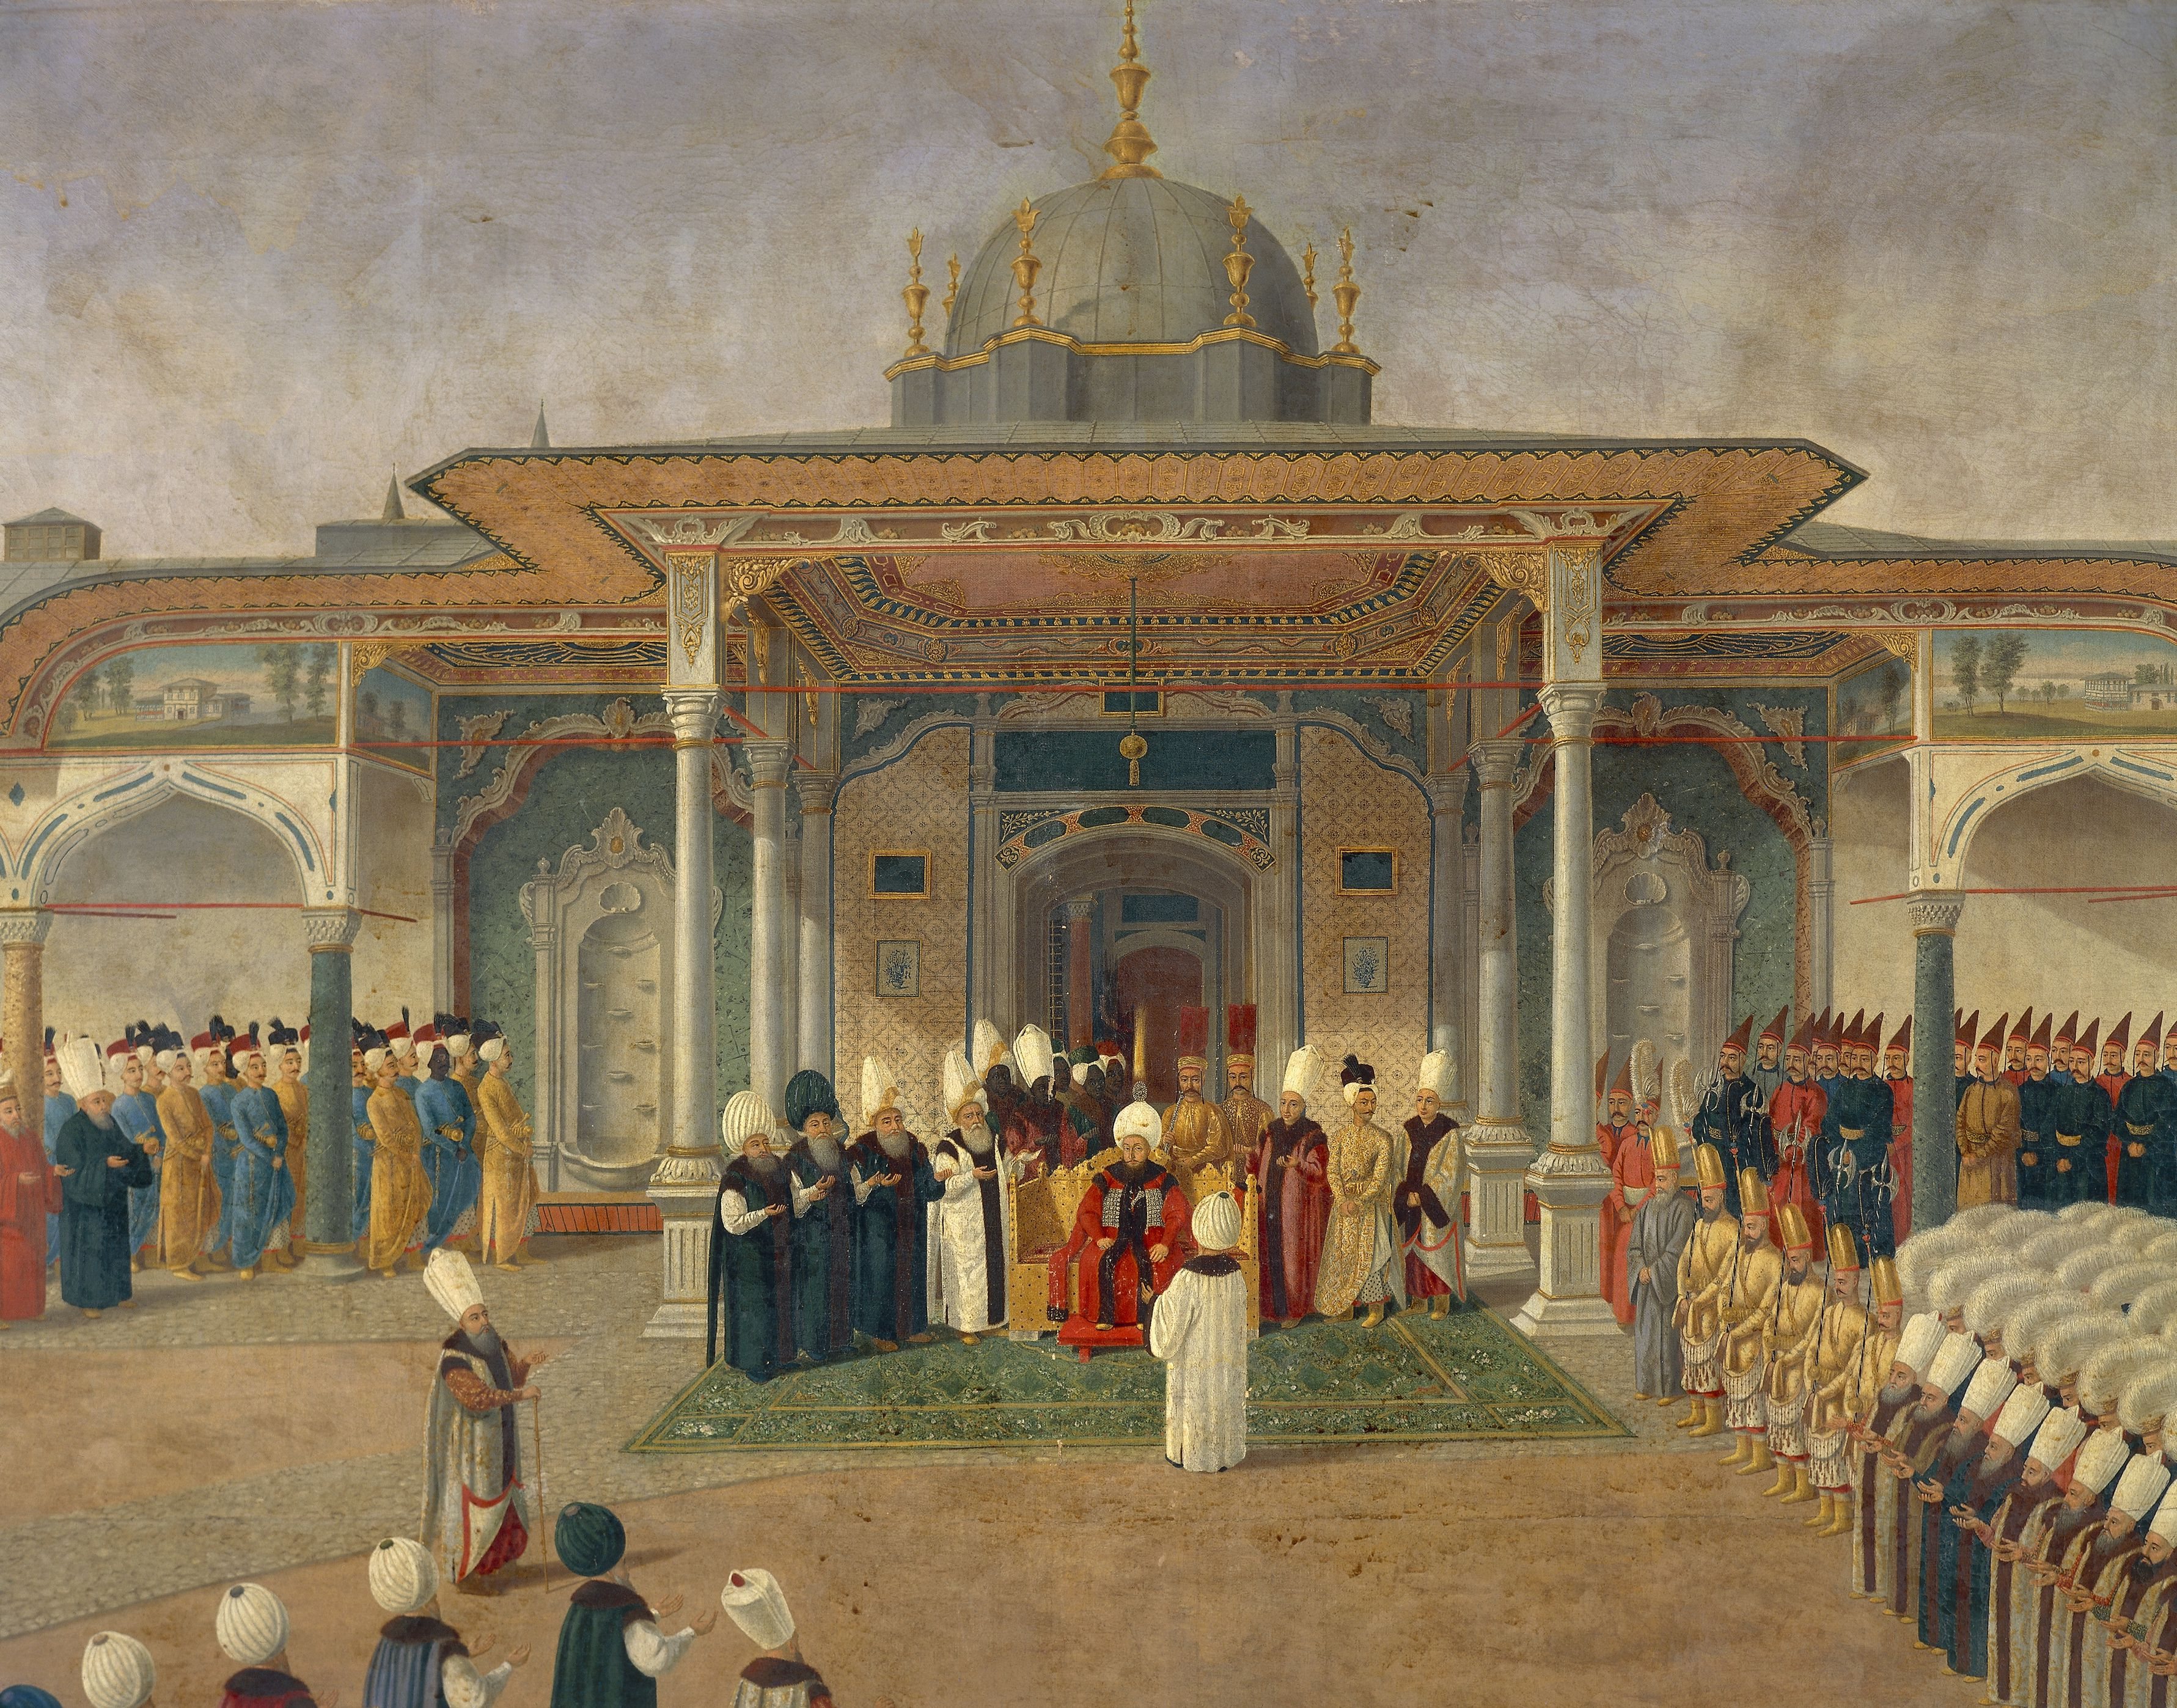 Selim III, detail from Reception at Court of Selim III at Topkapi Palace, gouache on paper, Detail, Turkey, 18th century